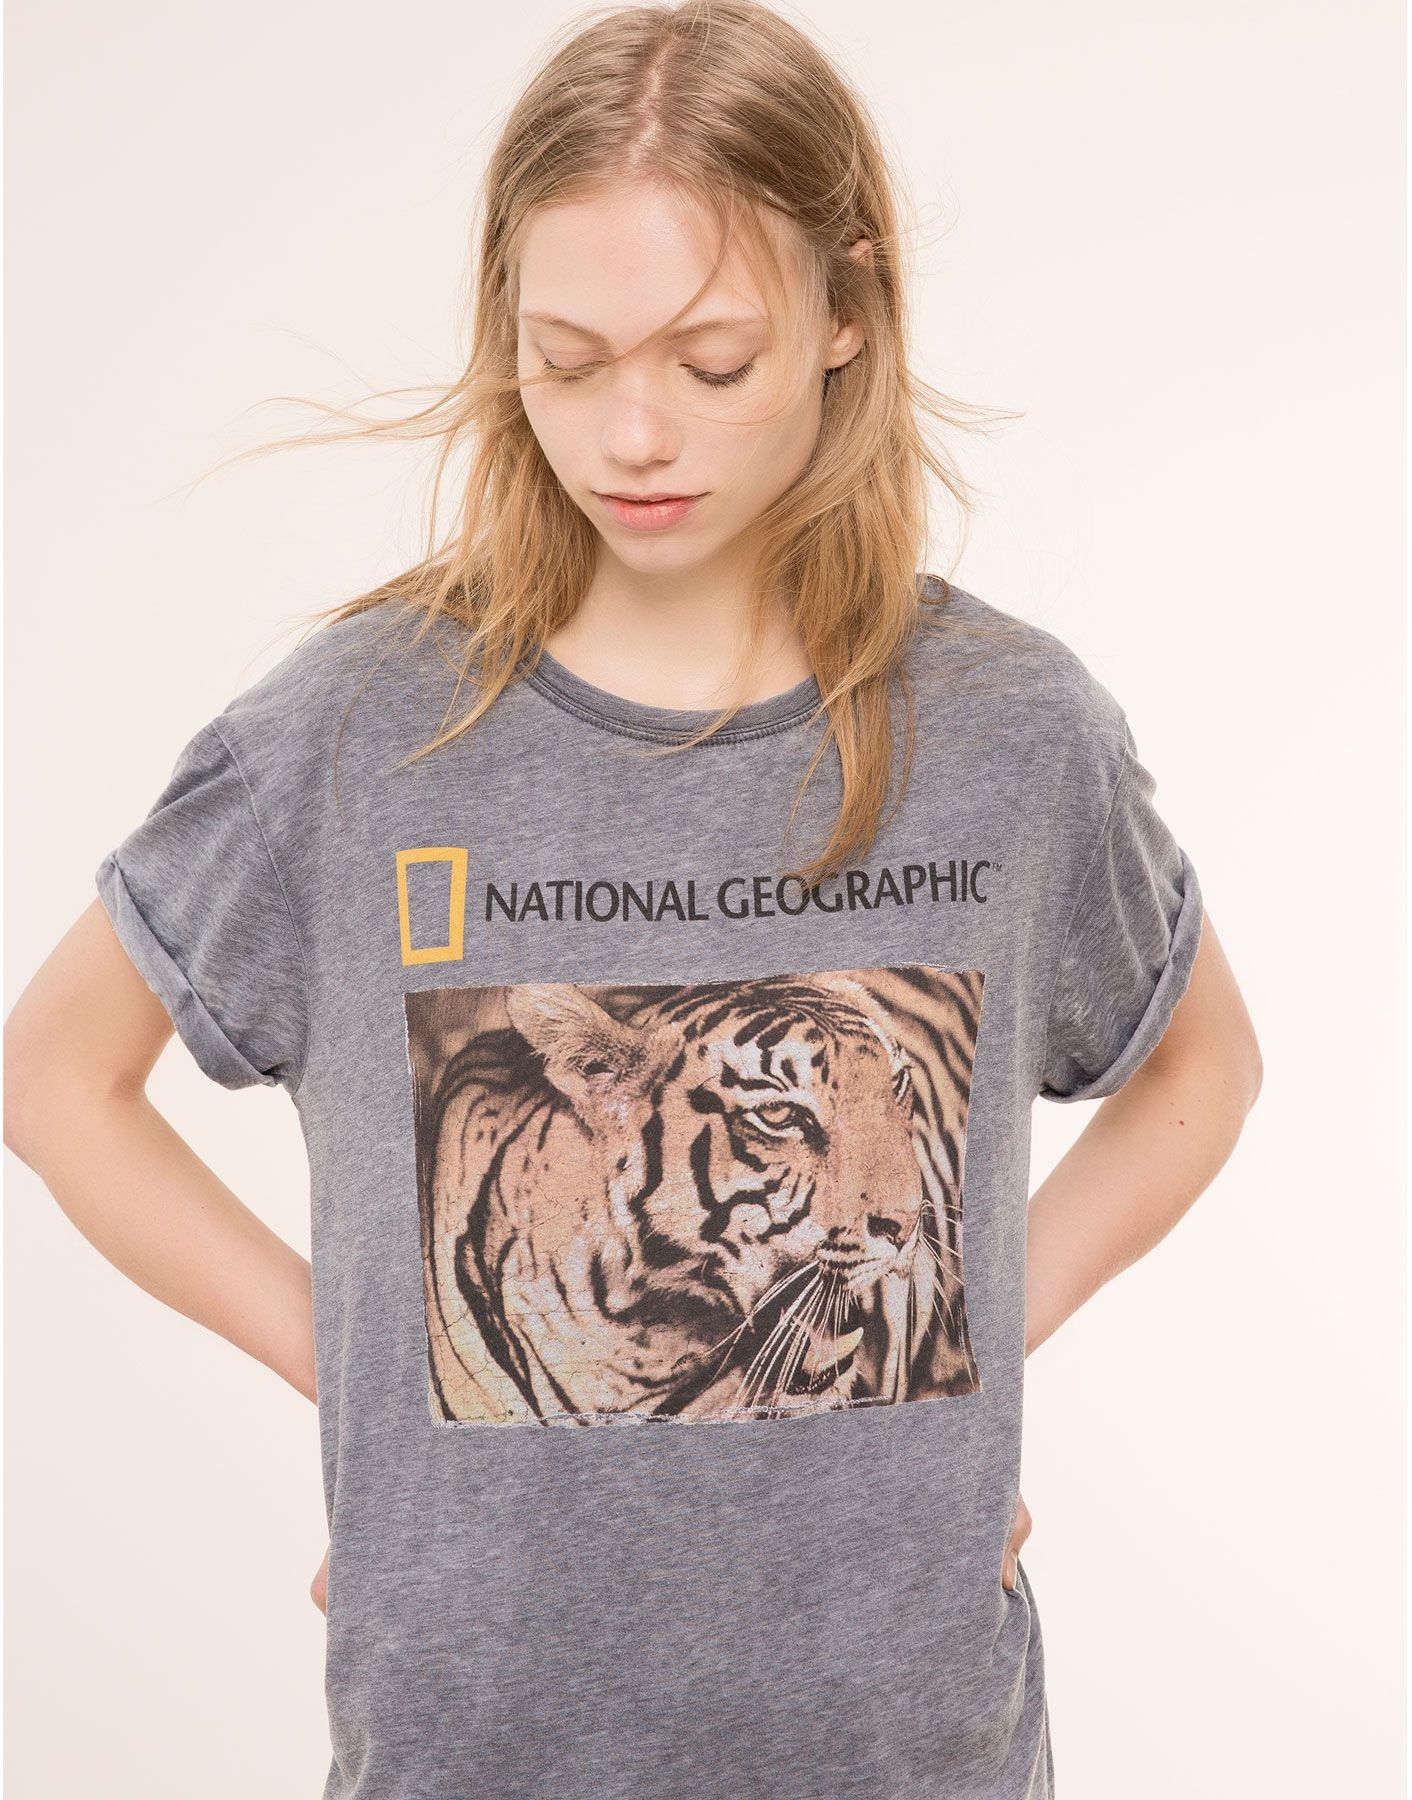 59d0d2ae991f T-SHIRT NATIONAL GEOGRAPHIC - T-SHIRTS E TOPS - MULHER - PULL BEAR Portugal